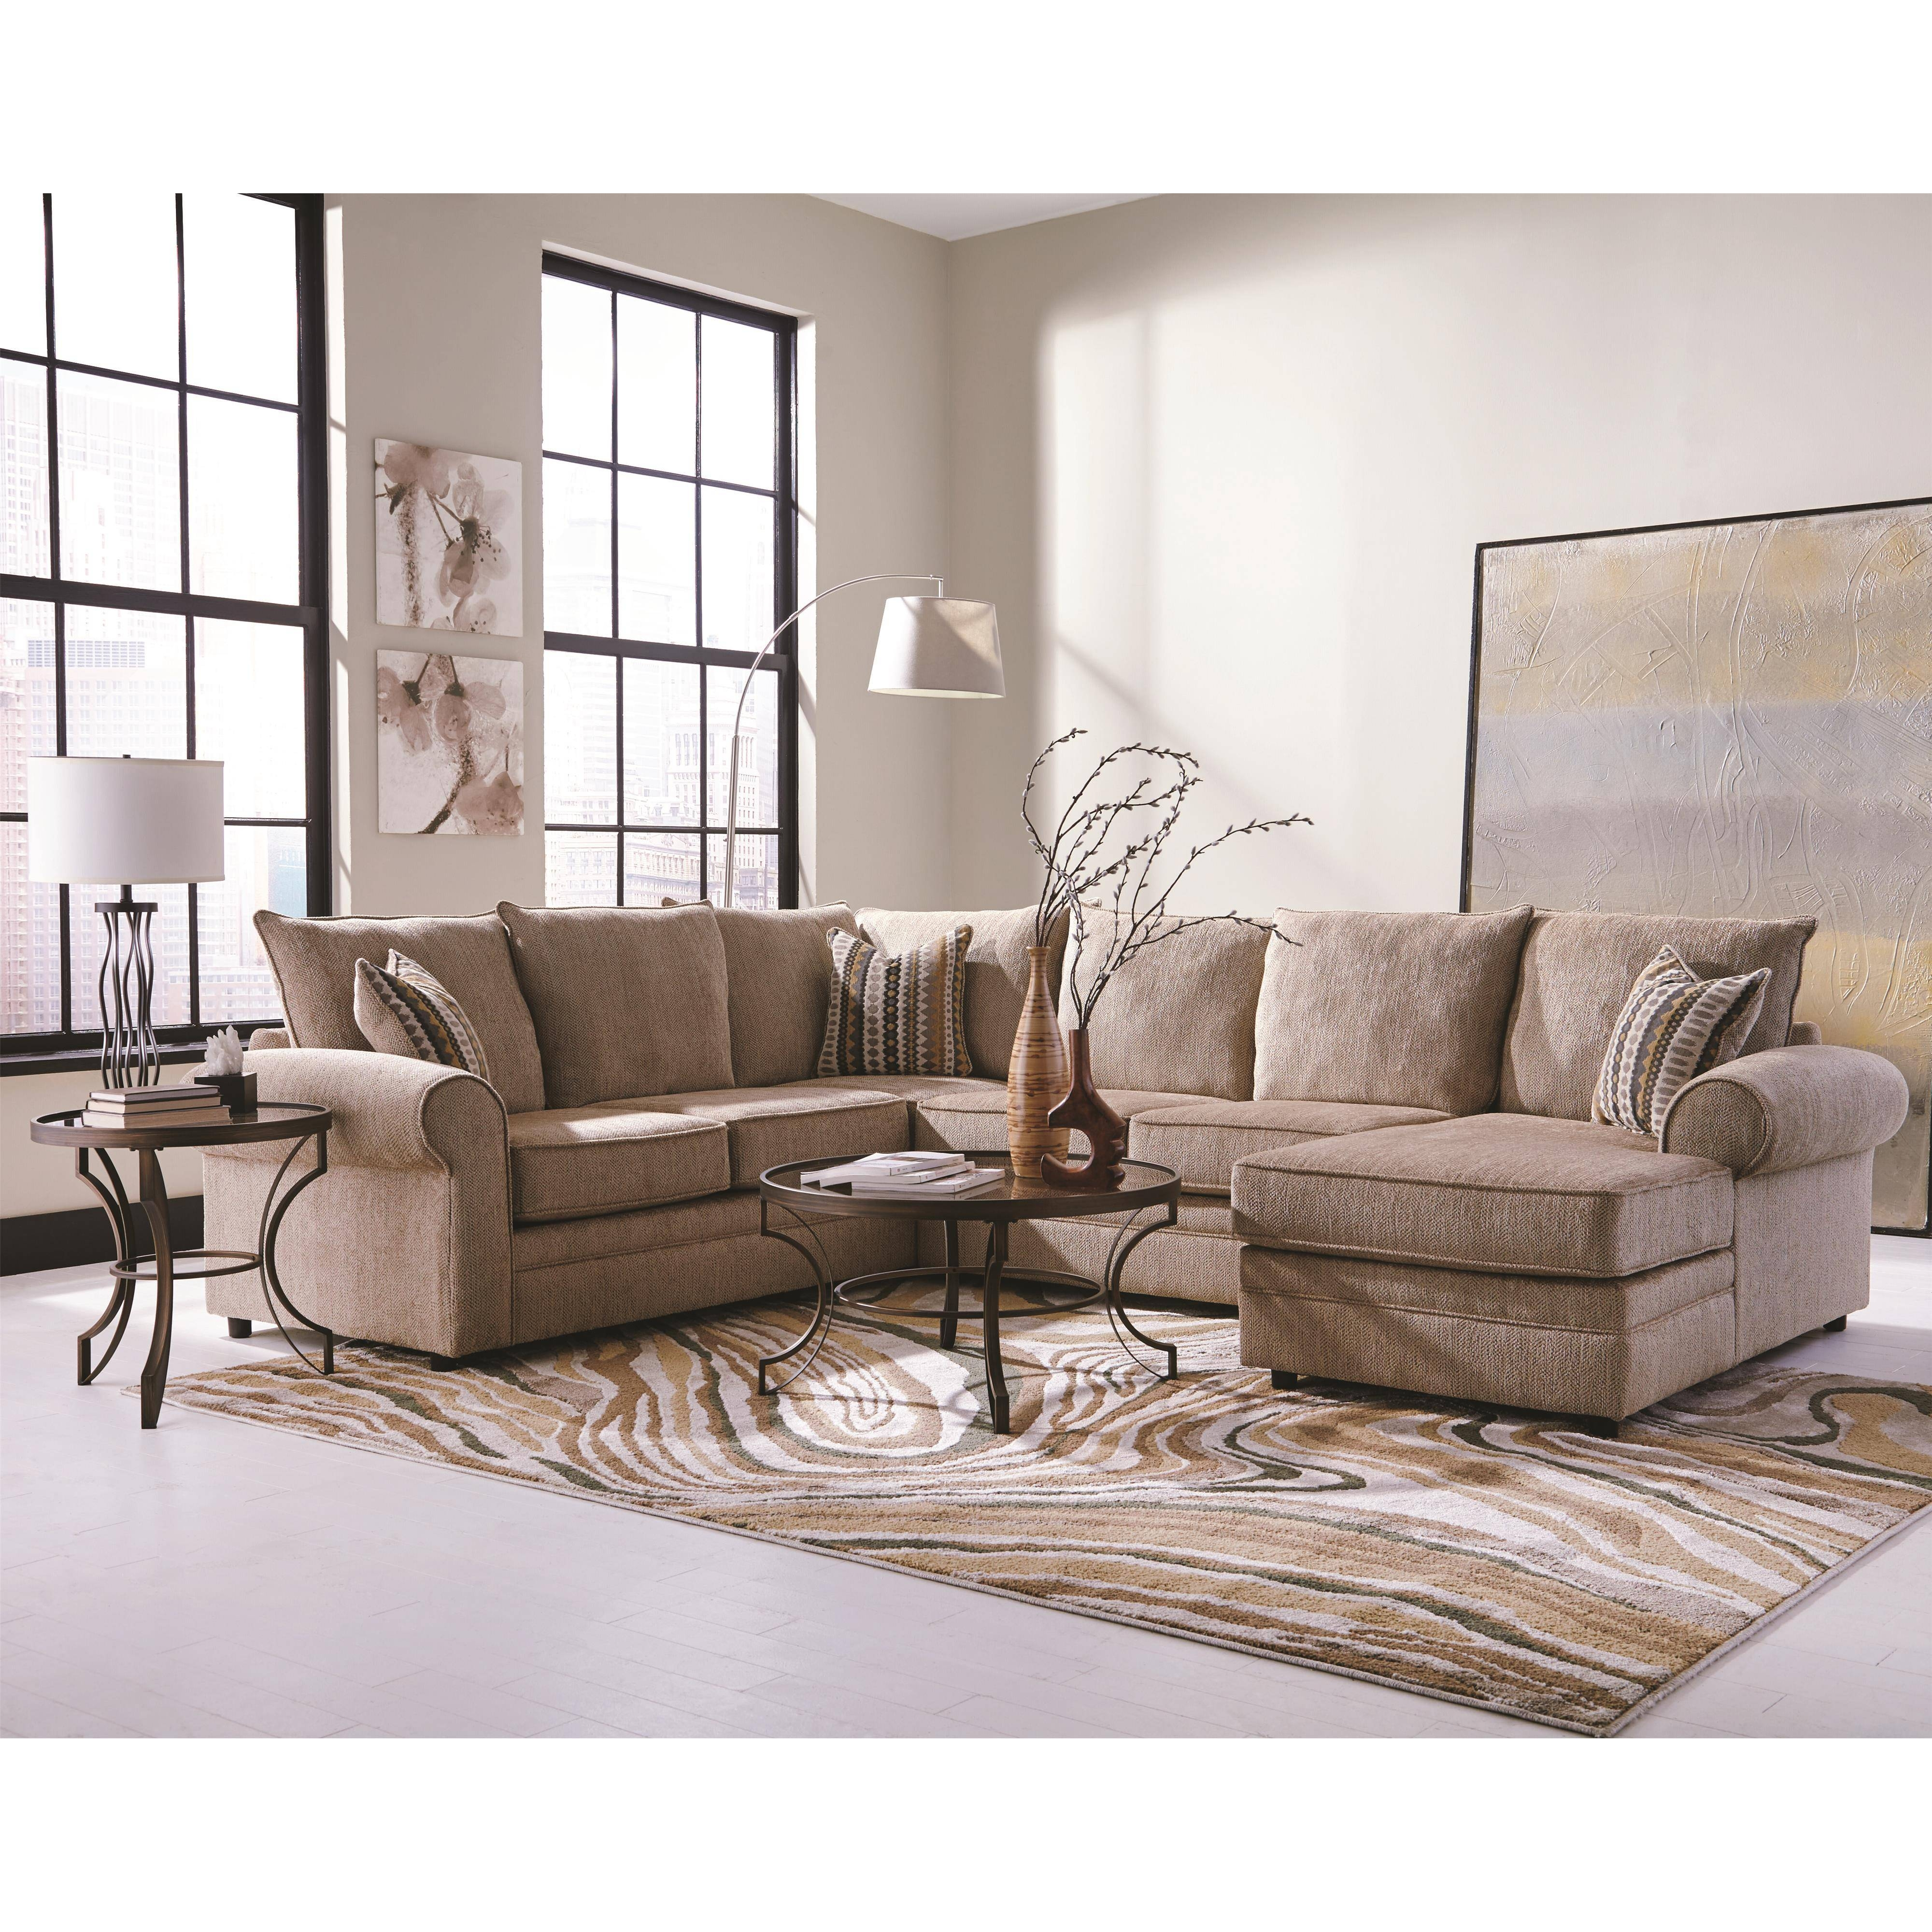 Living Room: Leather Tufted Sectional Sofa | Coaster Sectional with regard to Tufted Sectional Sofa With Chaise (Image 14 of 30)